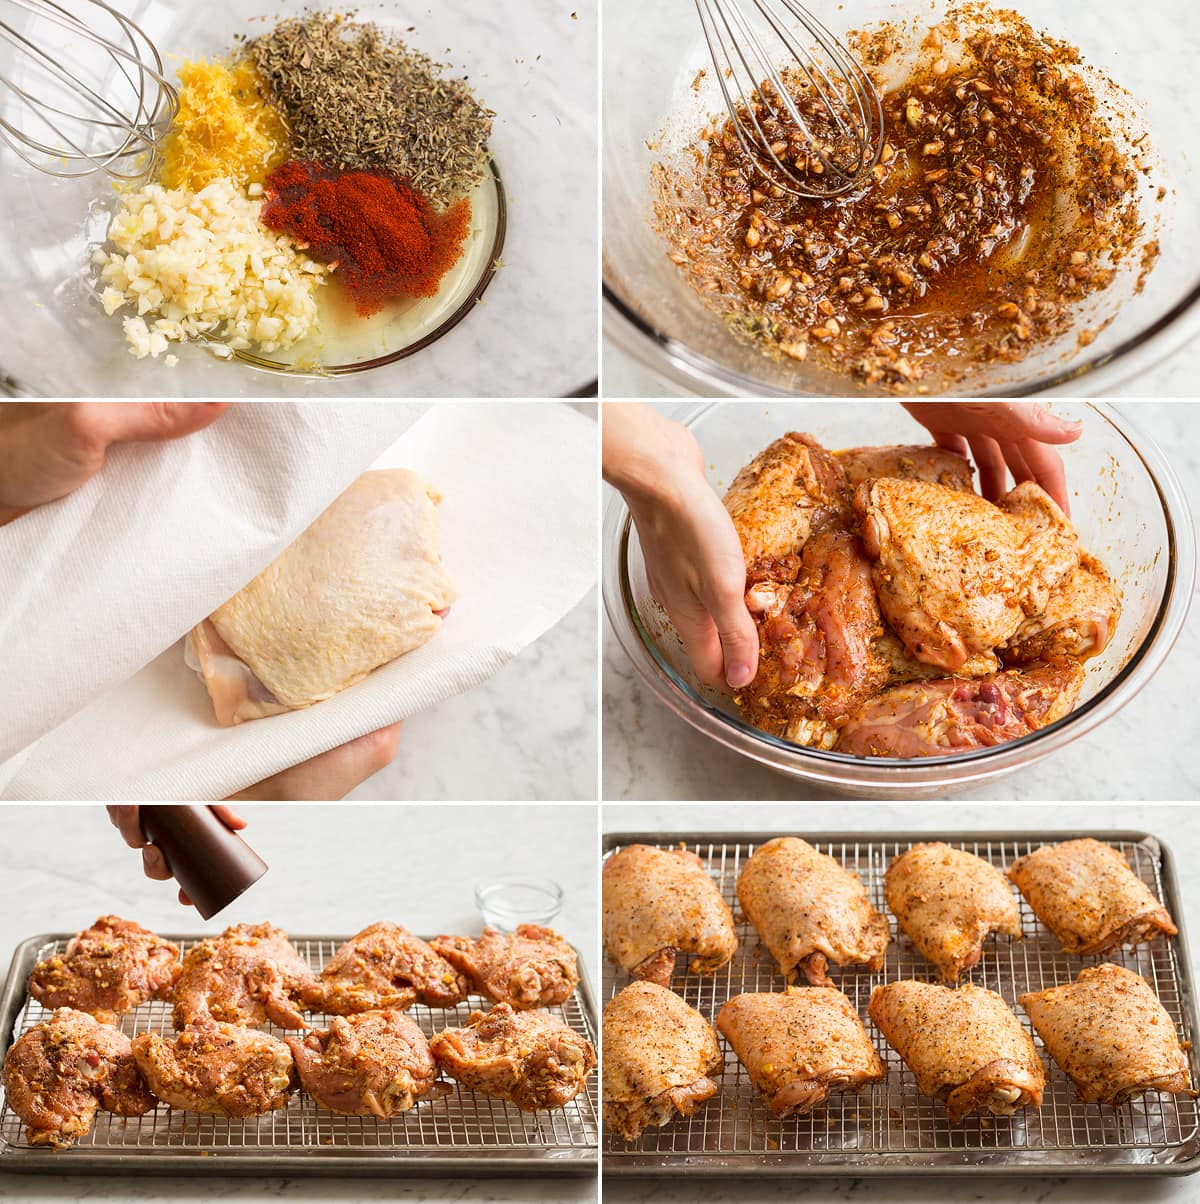 Collage of six images showing how to prepare chicken thighs for baking. Shows making a seasoning mixture, drying chicken, tossing with mixture and setting on rack in baking sheet.